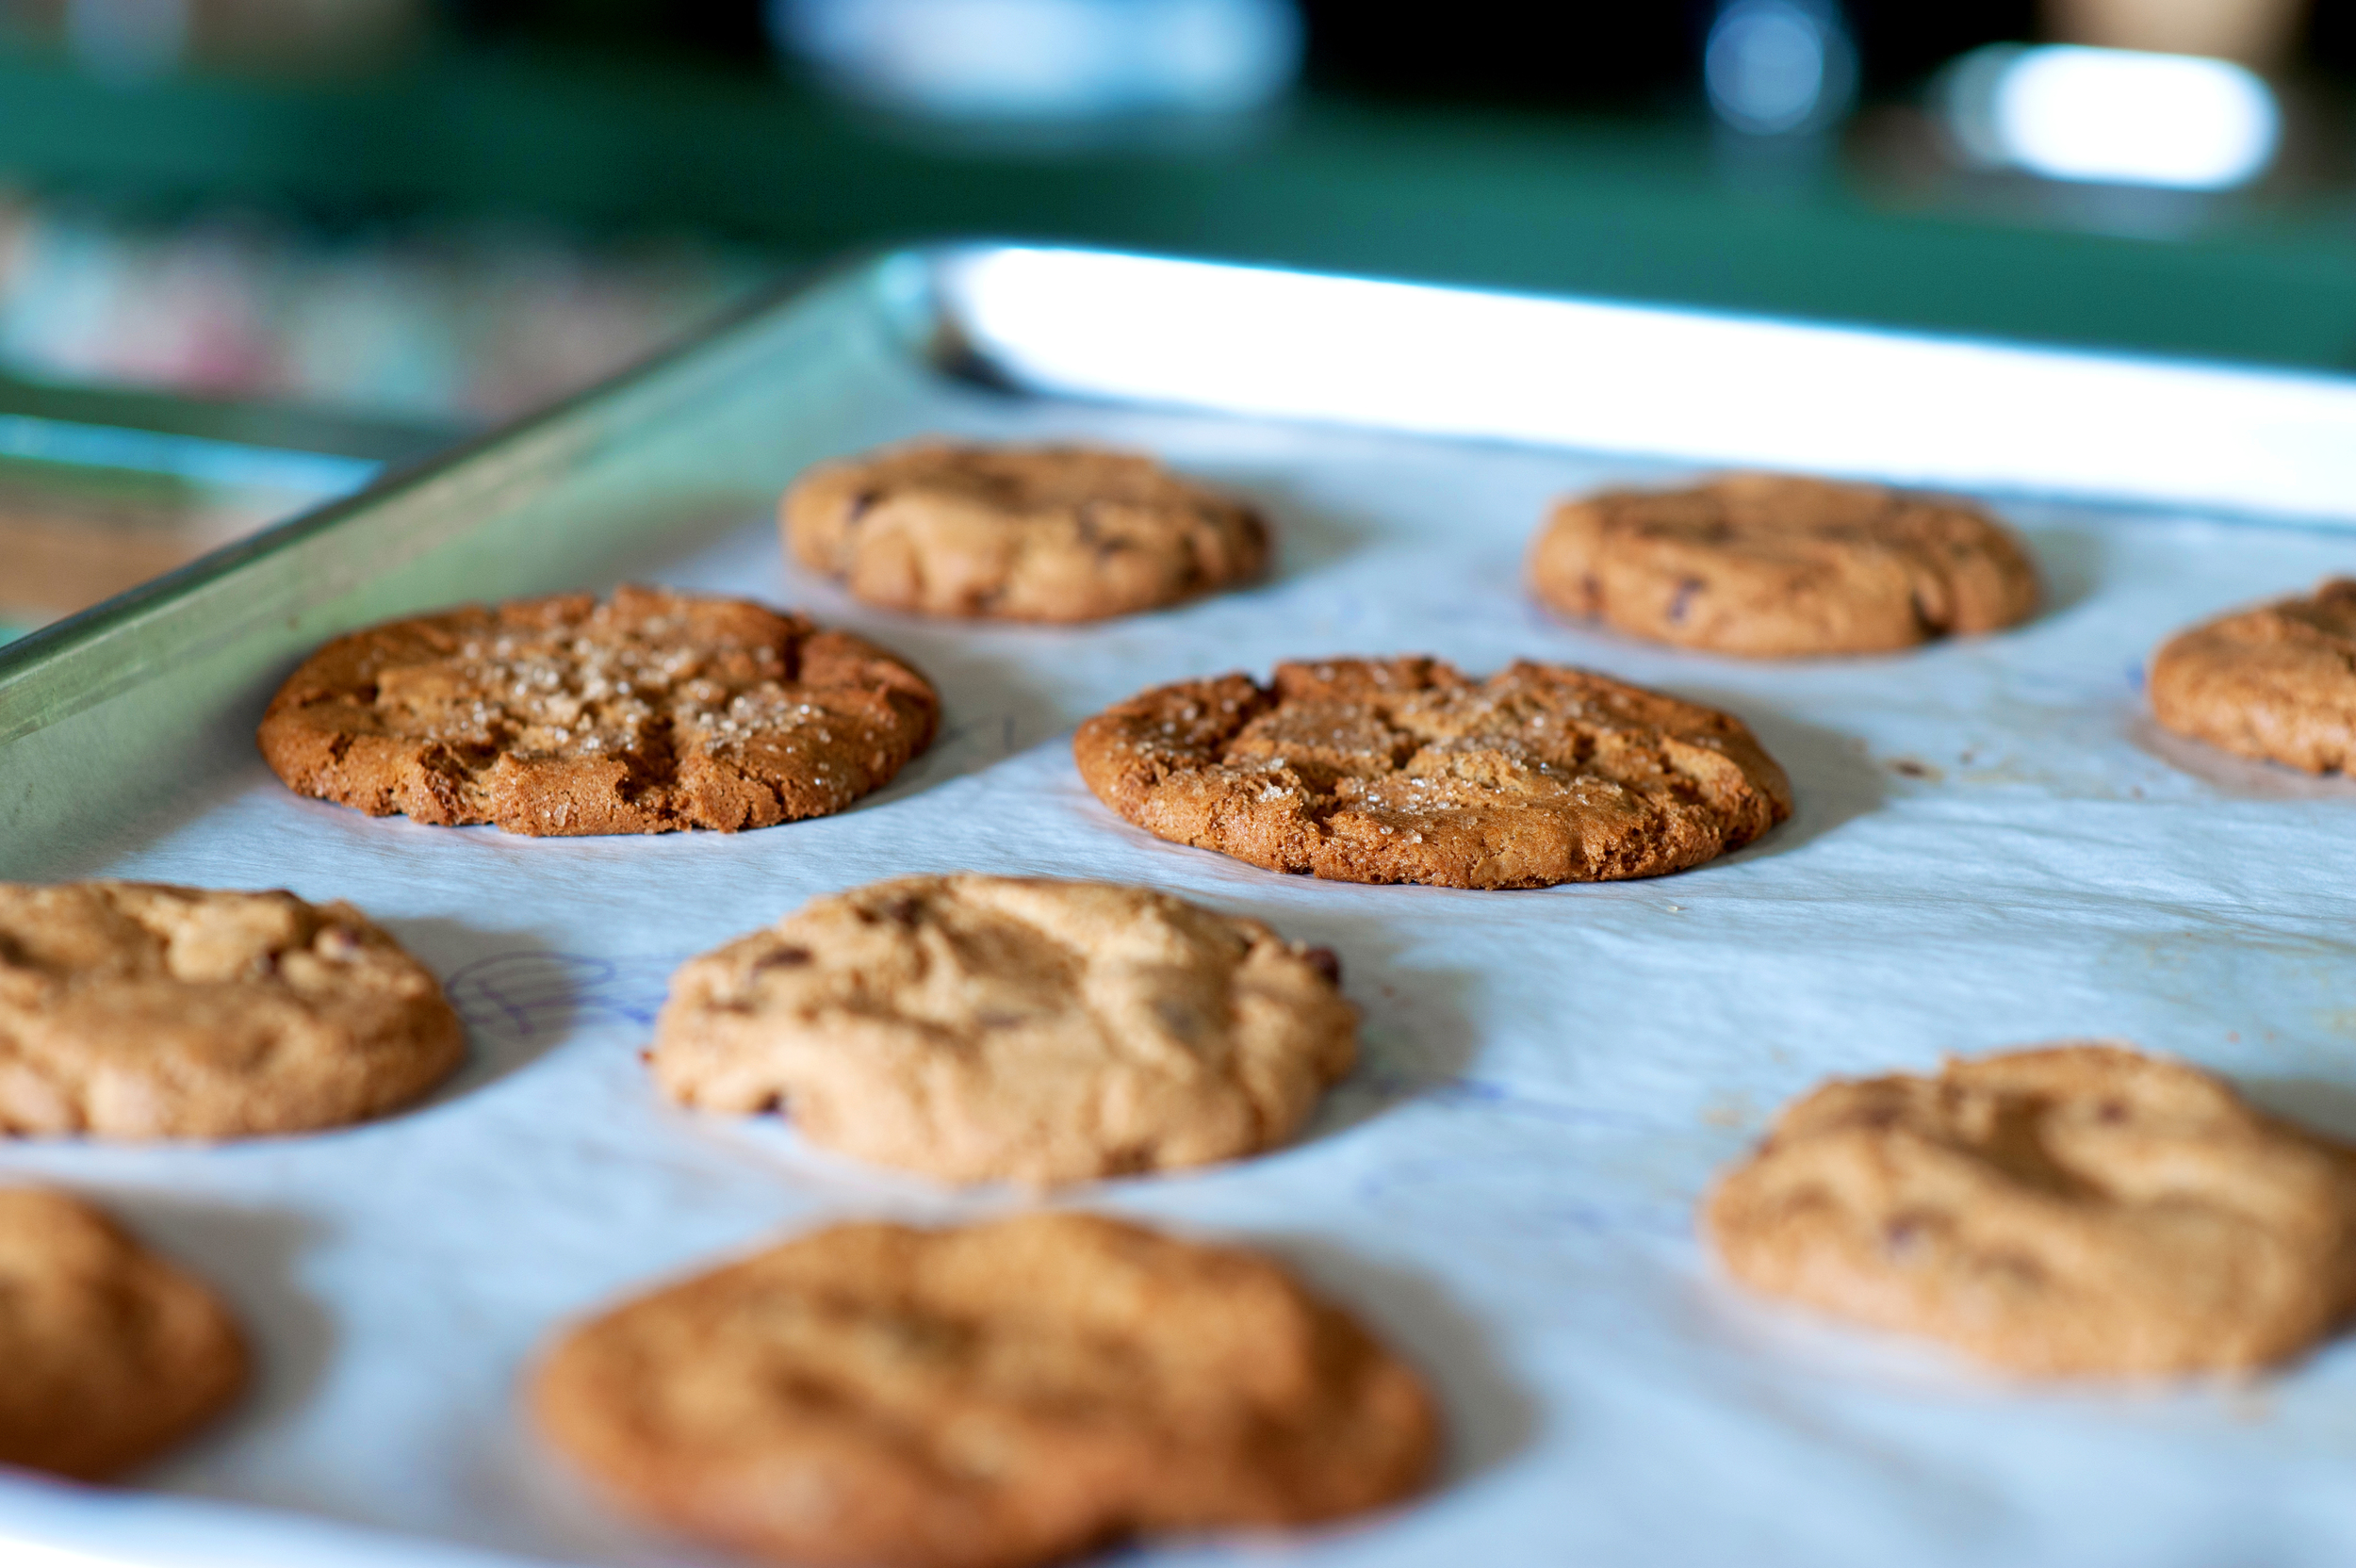 Cookies are fresh baked every morning, made with organic eggs, unbleached flour, no additives!